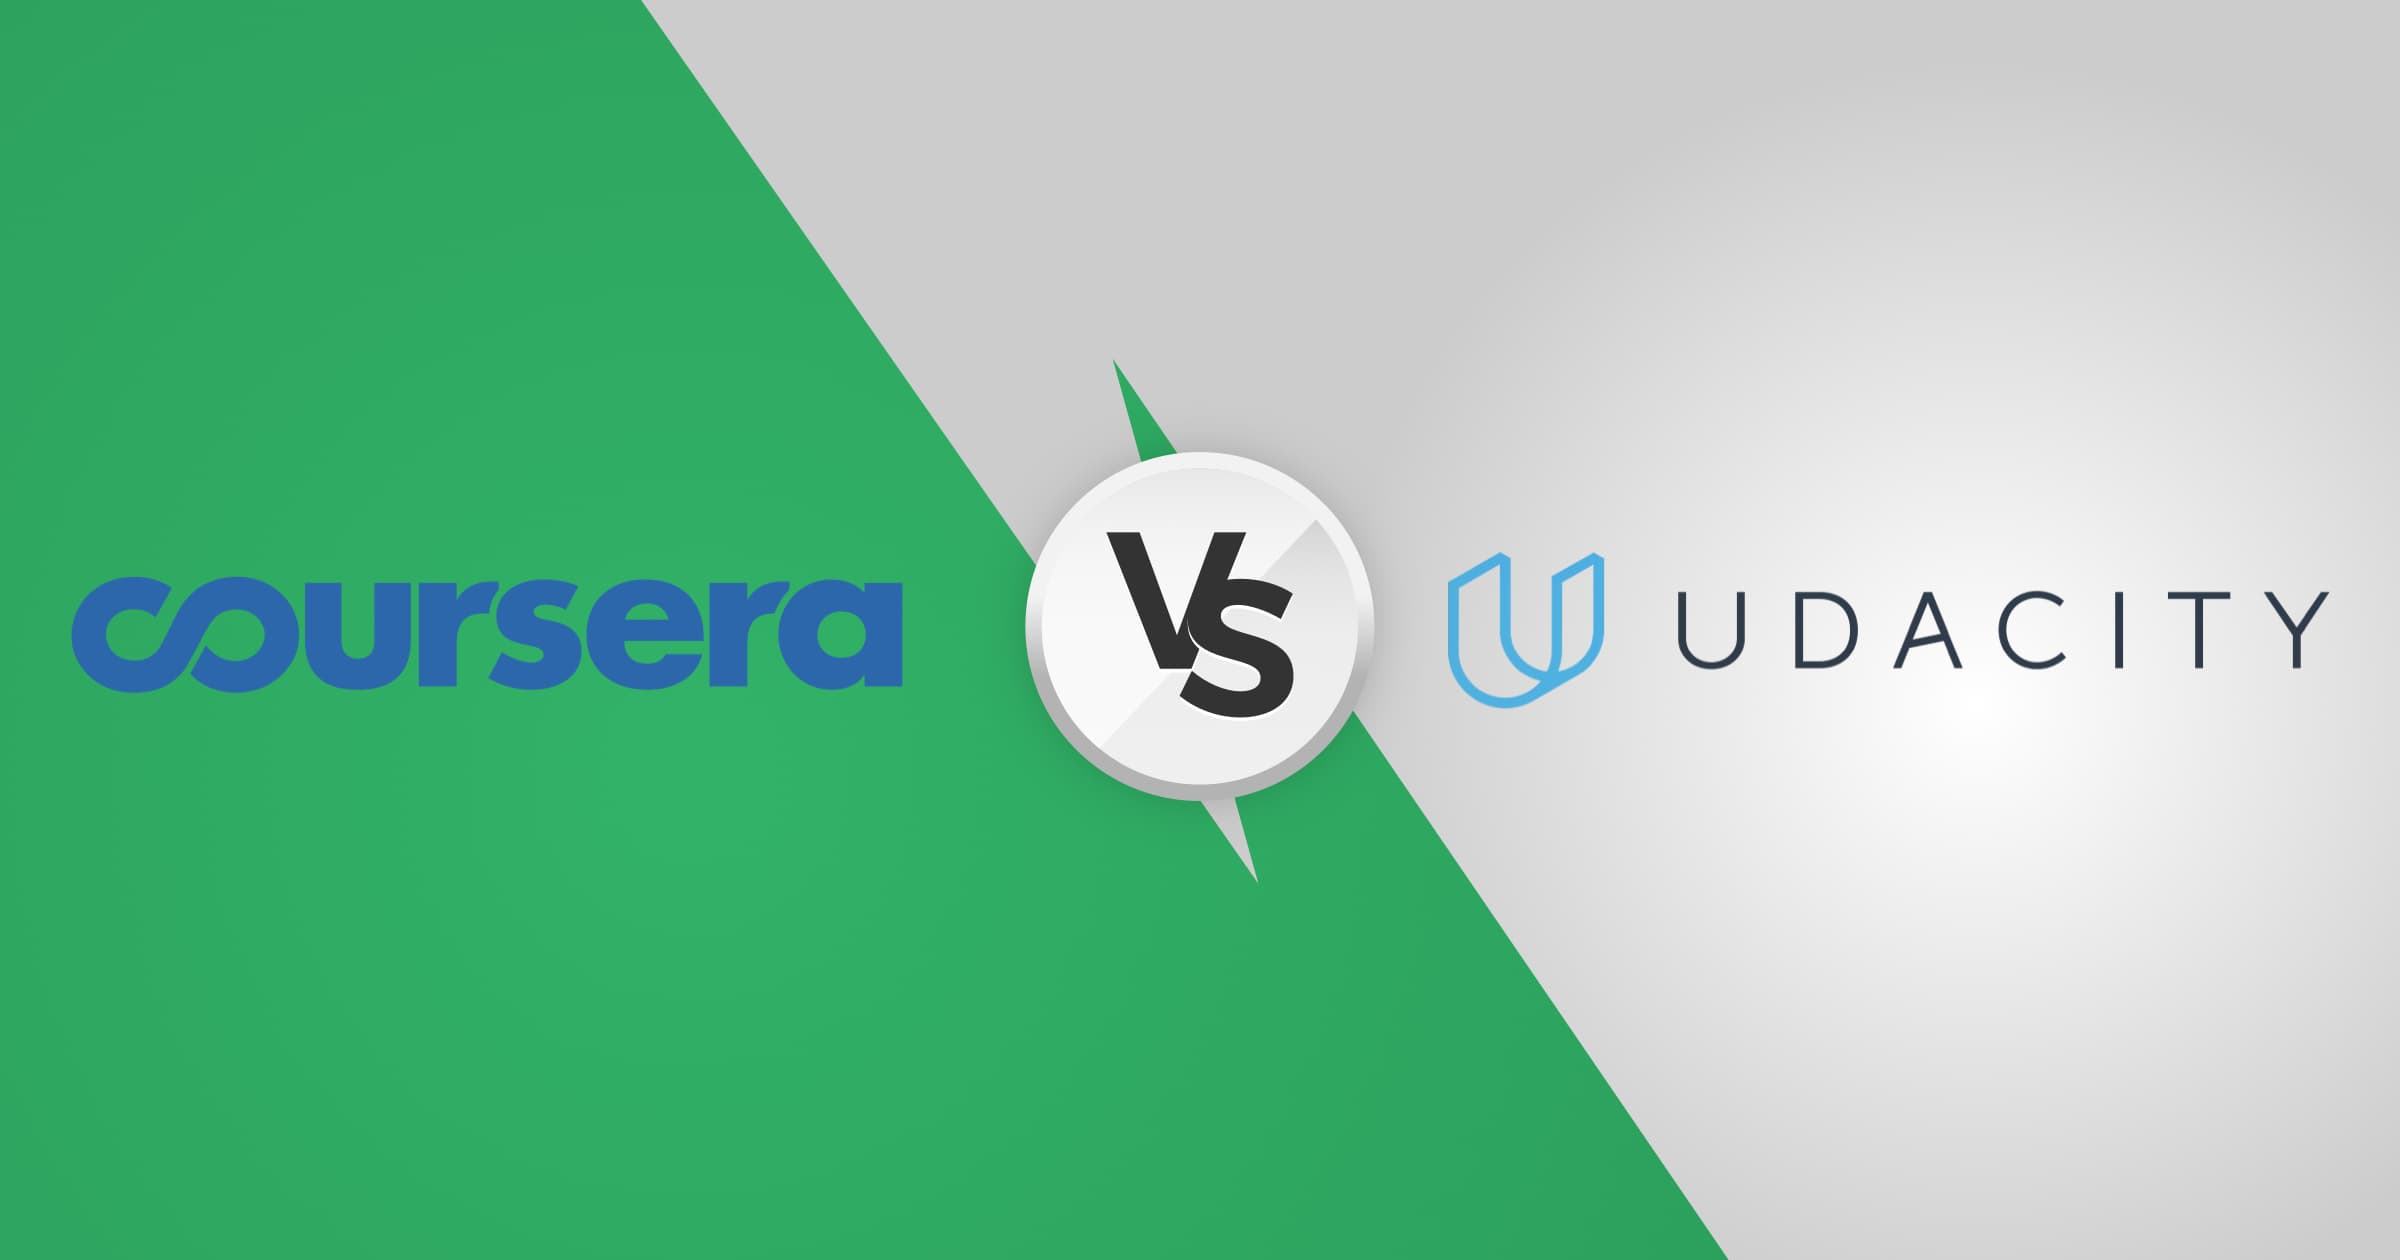 Coursera vs Udacity: Which is Better?